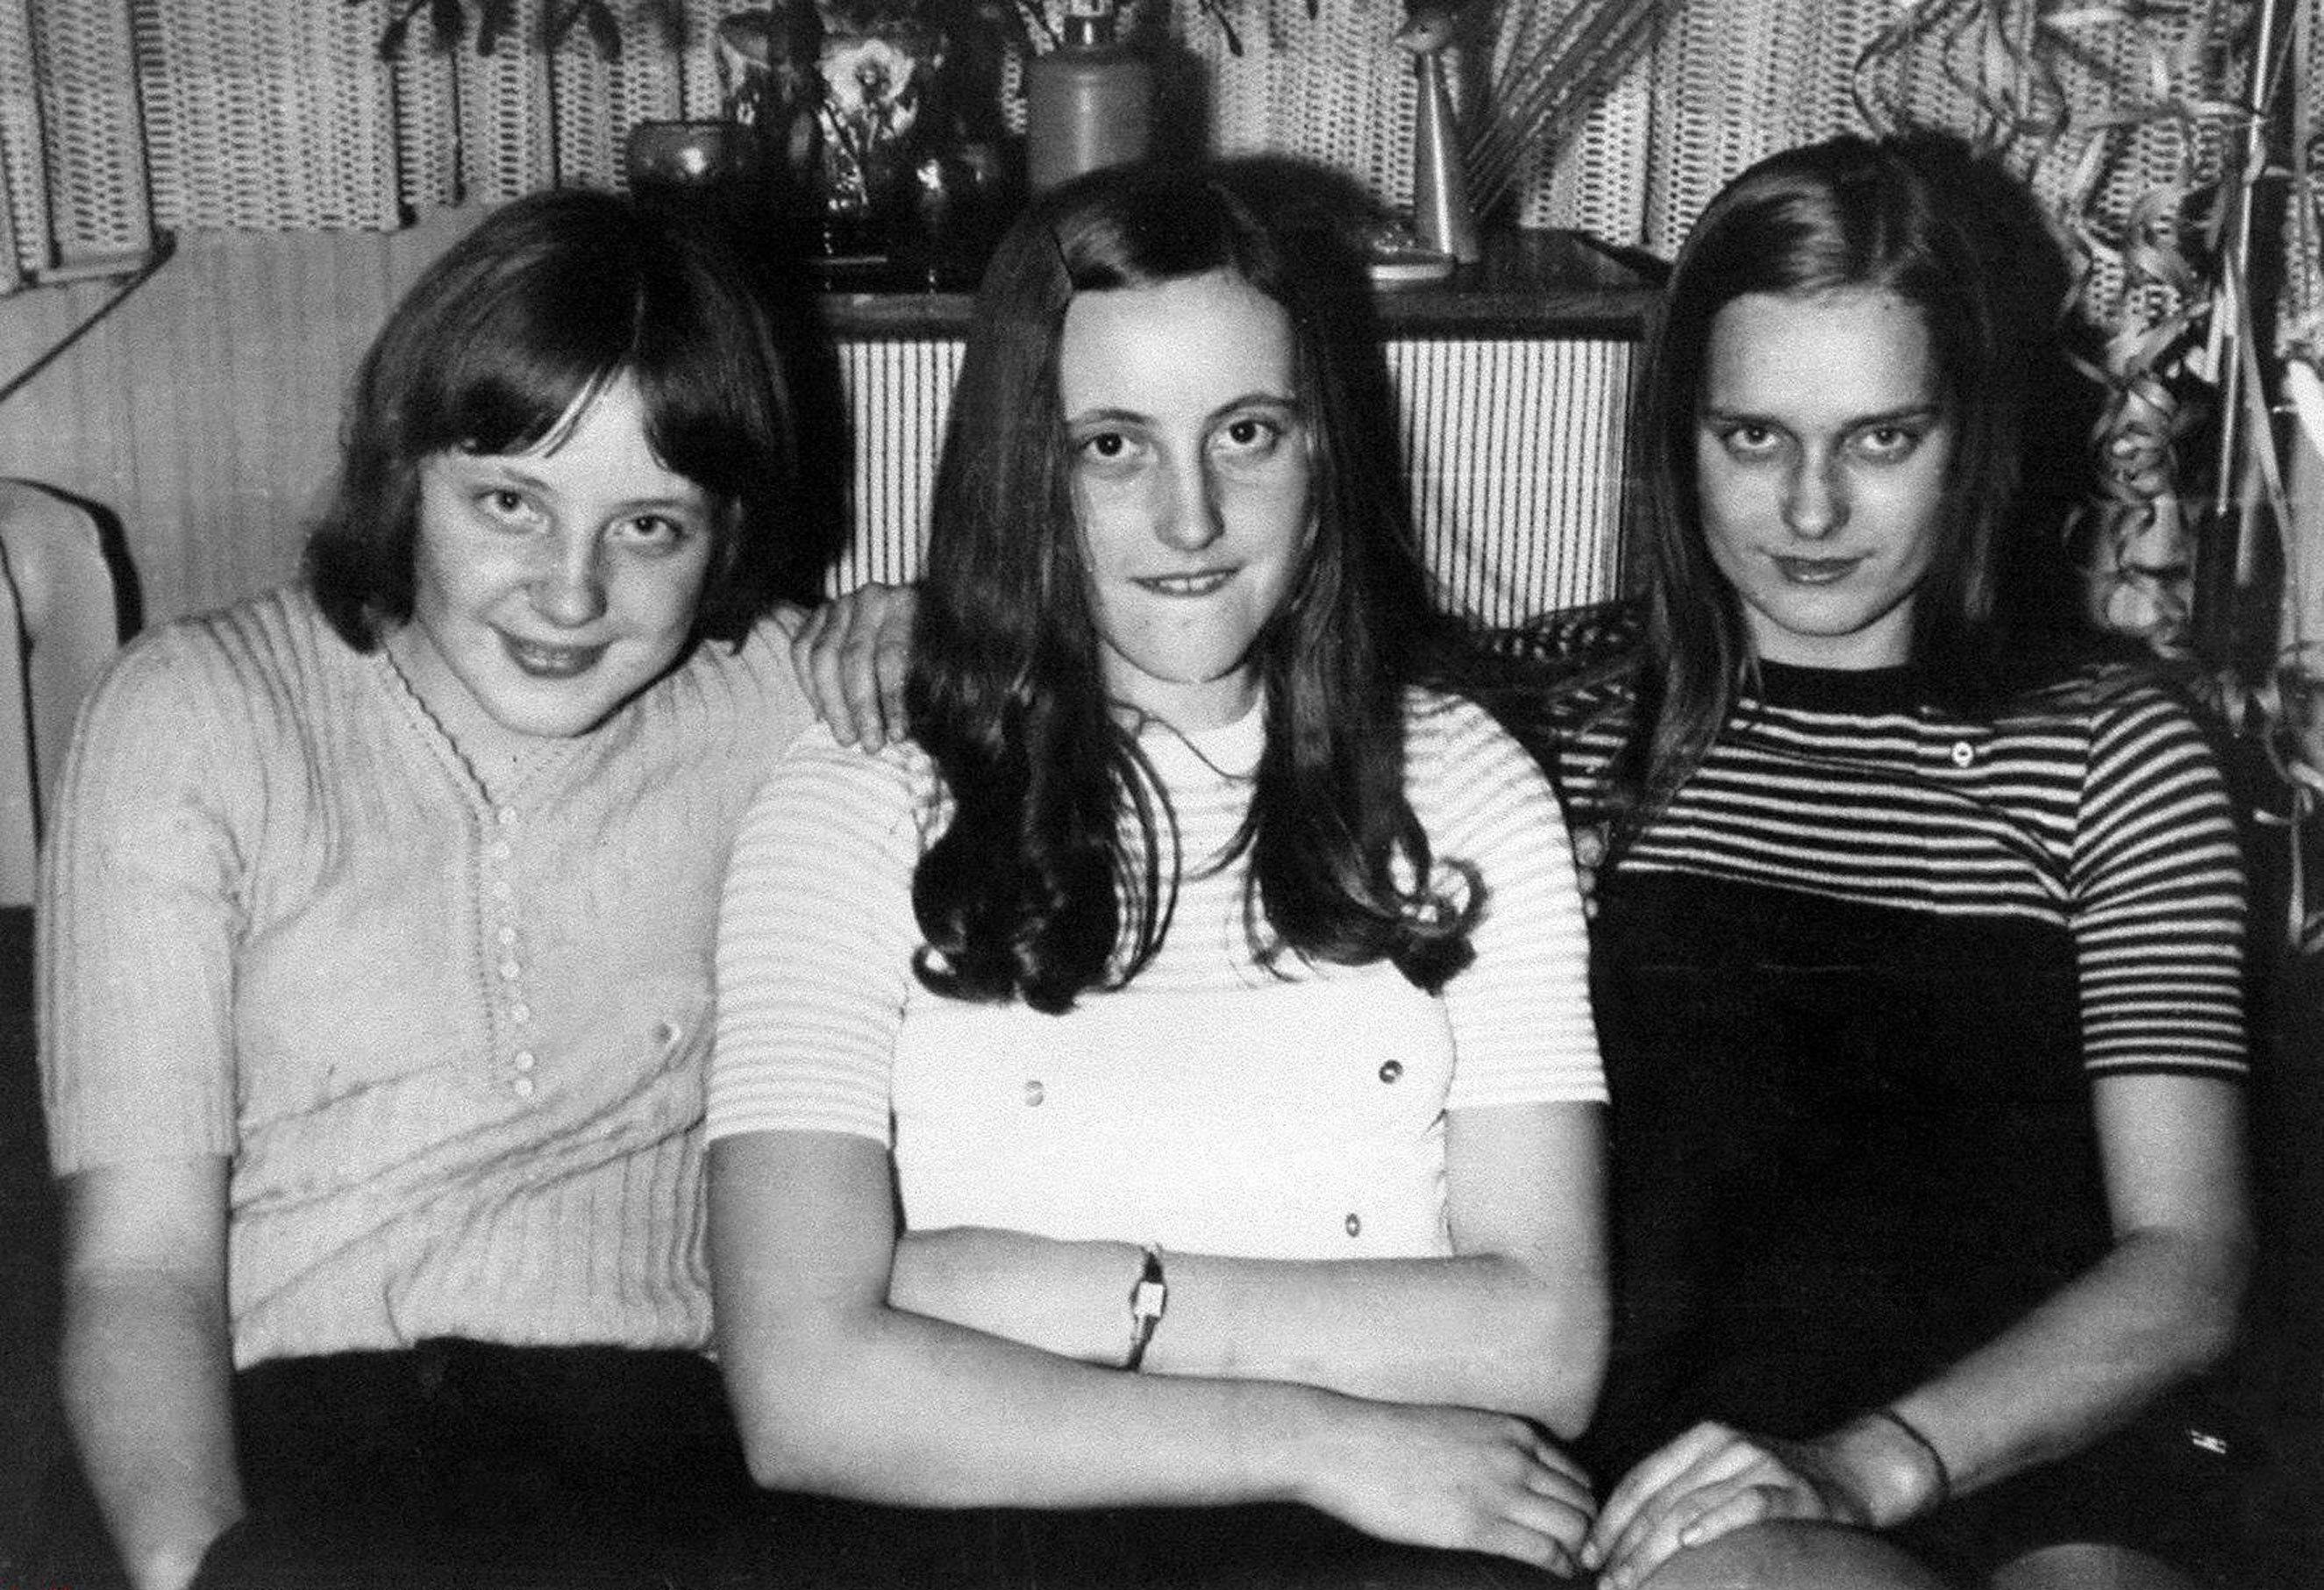 Angela Kasner, 18, with friends at a New Year's Eve party in Berlin in 1972.